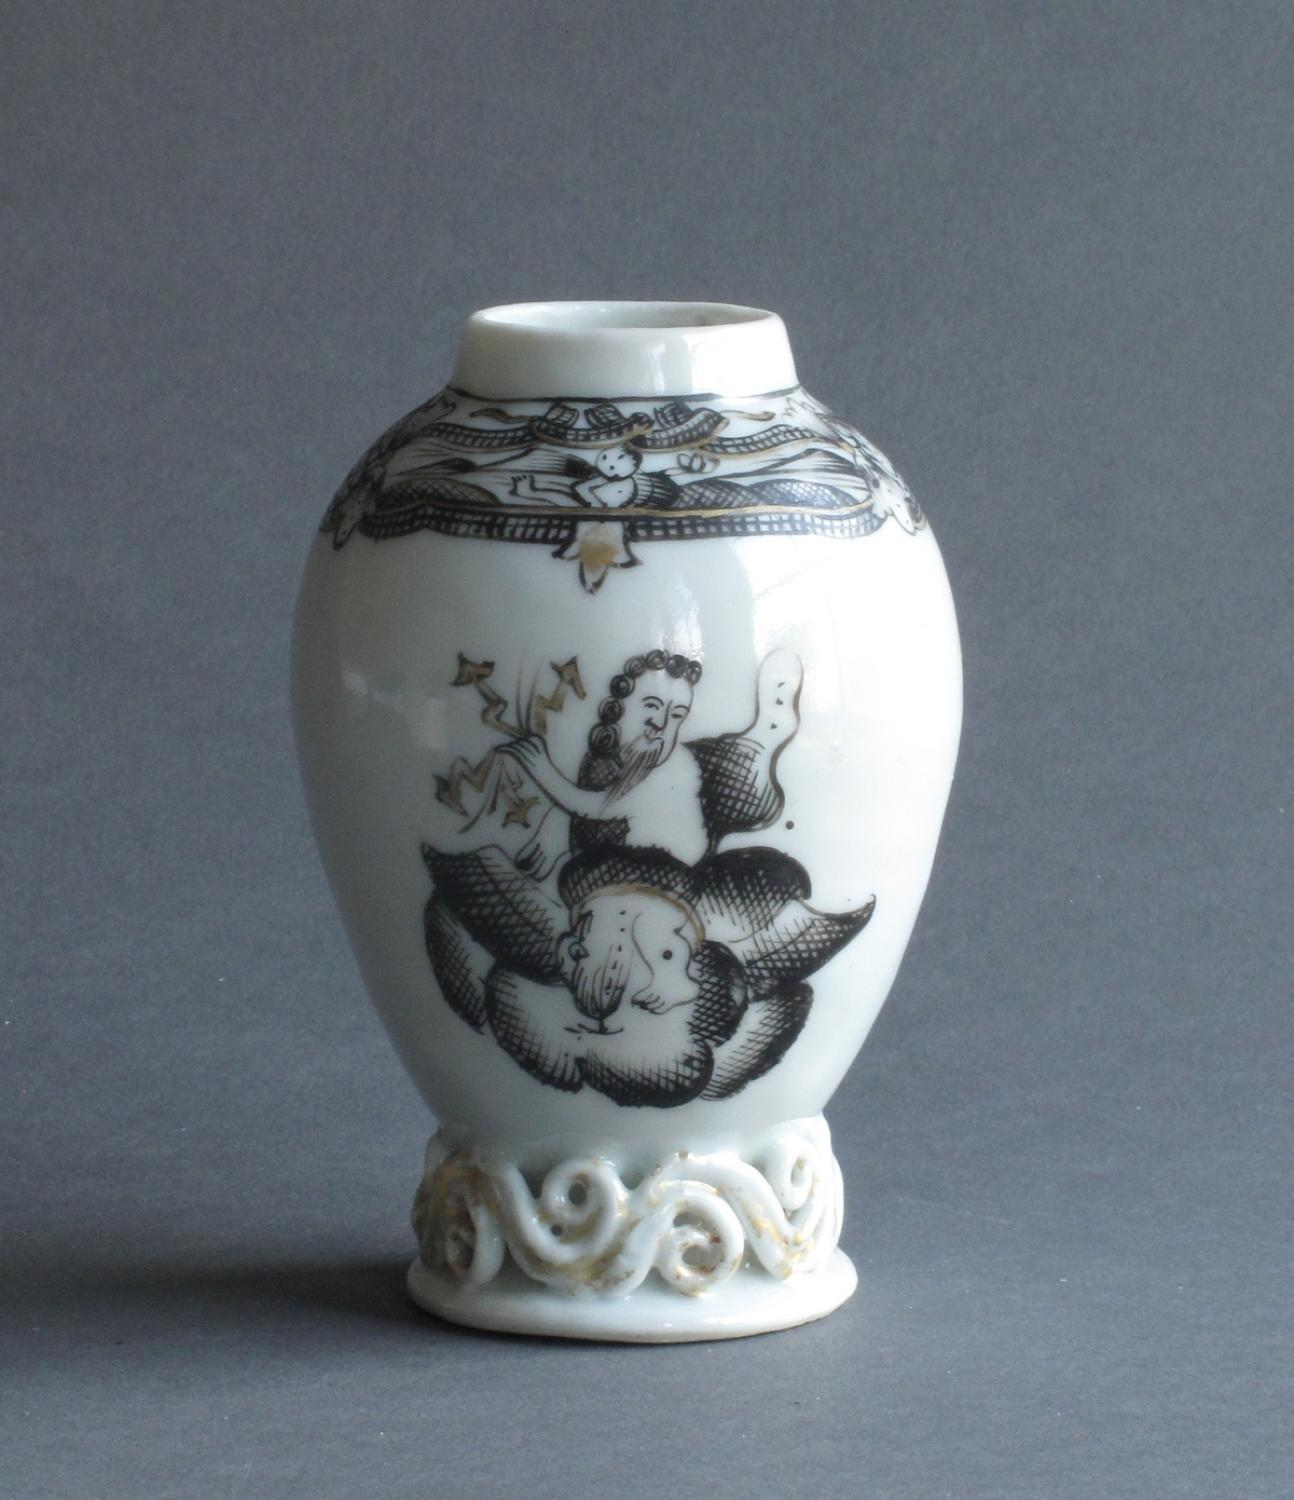 Chinese export grisaille tea canister c1750